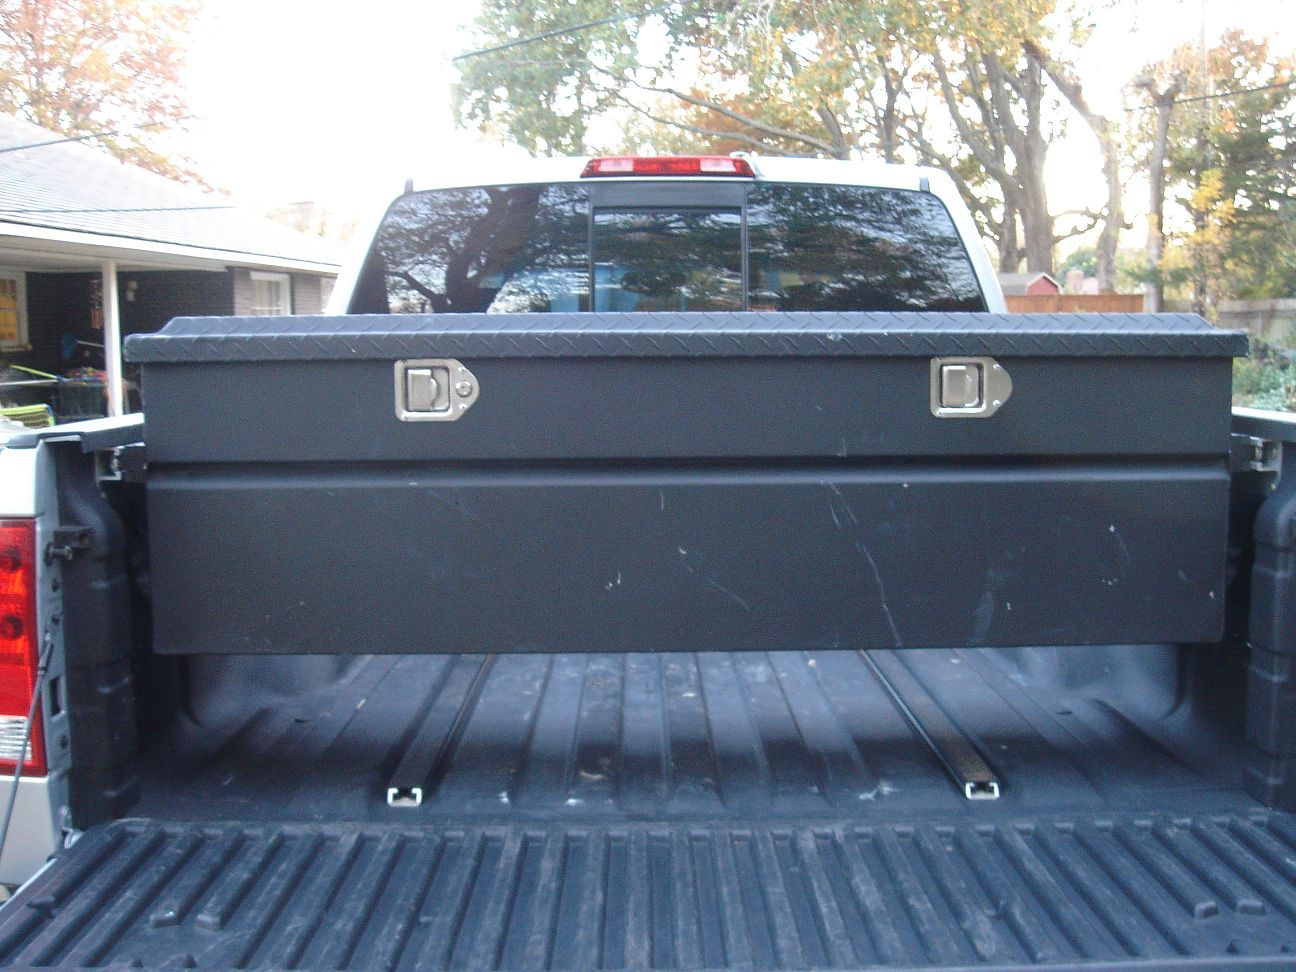 Sliding Truck Tool Box Sliding Truck Tool Chest Sliding Truck Bed Tool Box Sliding Drawer Truck Tool Box Slidi Truck Tool Box Bed Tool Box Truck Bed Tool Boxes